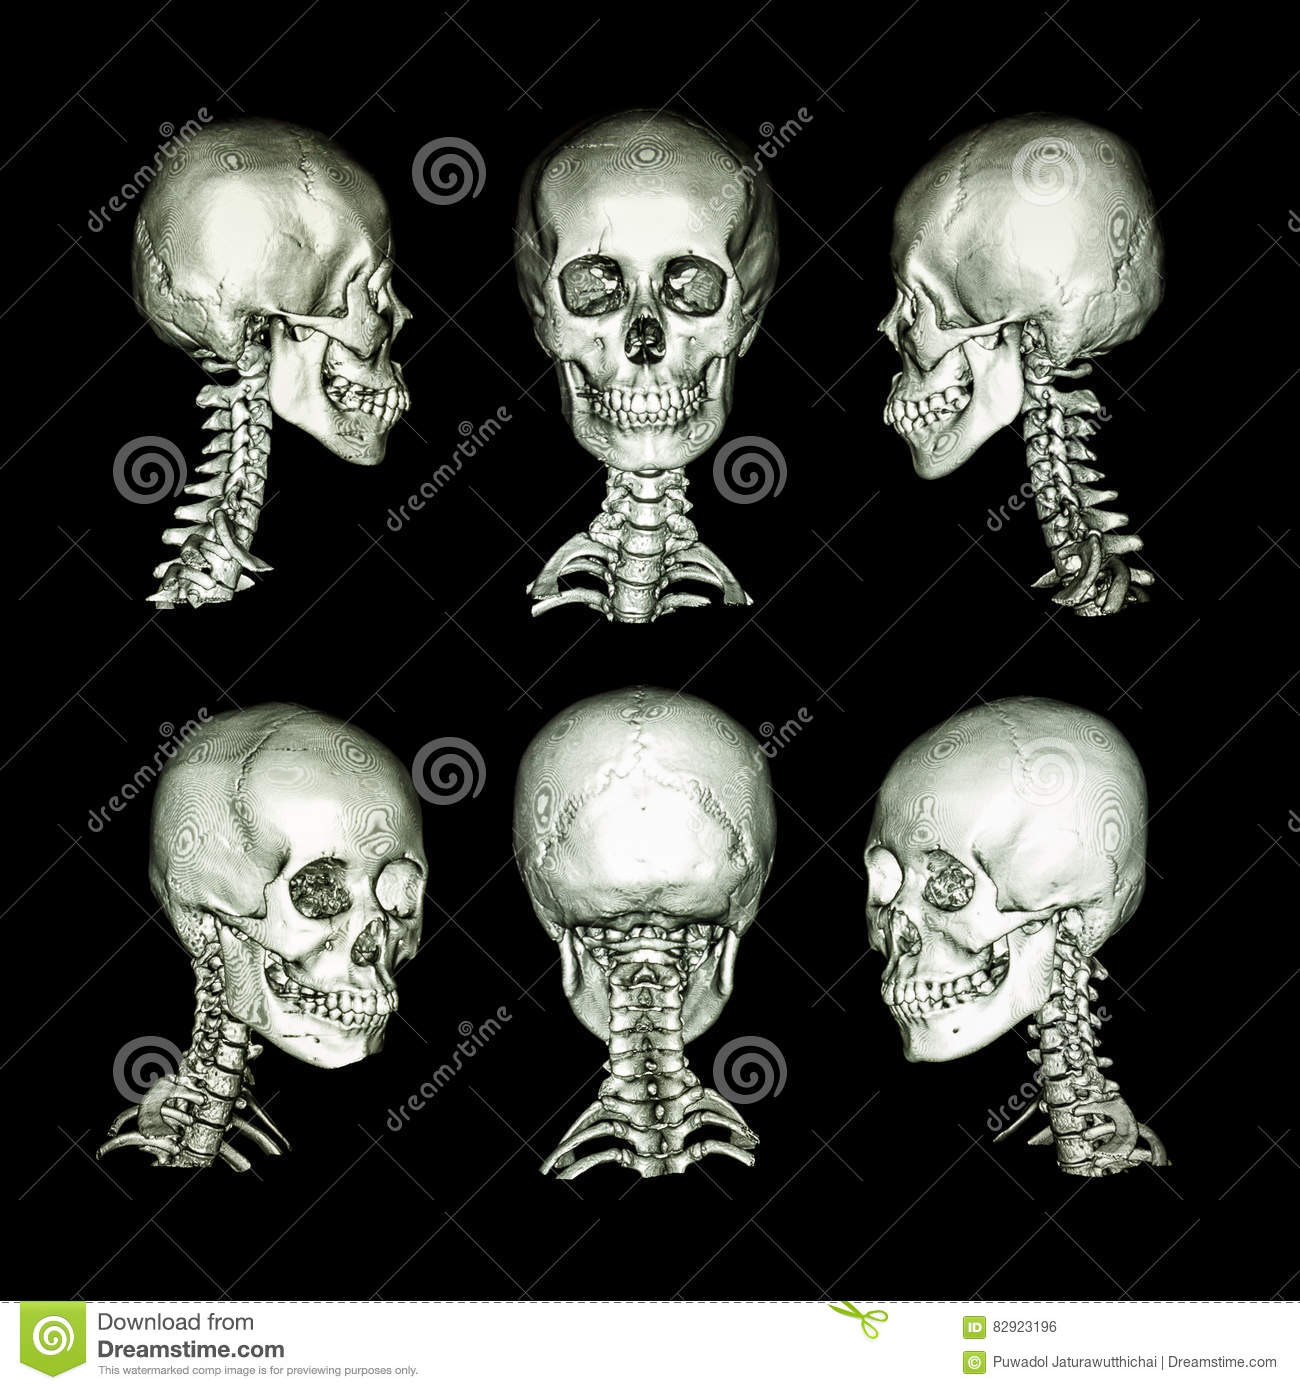 CT Scan And 3D Image  Normal Human Skull And Cervical Spine   All